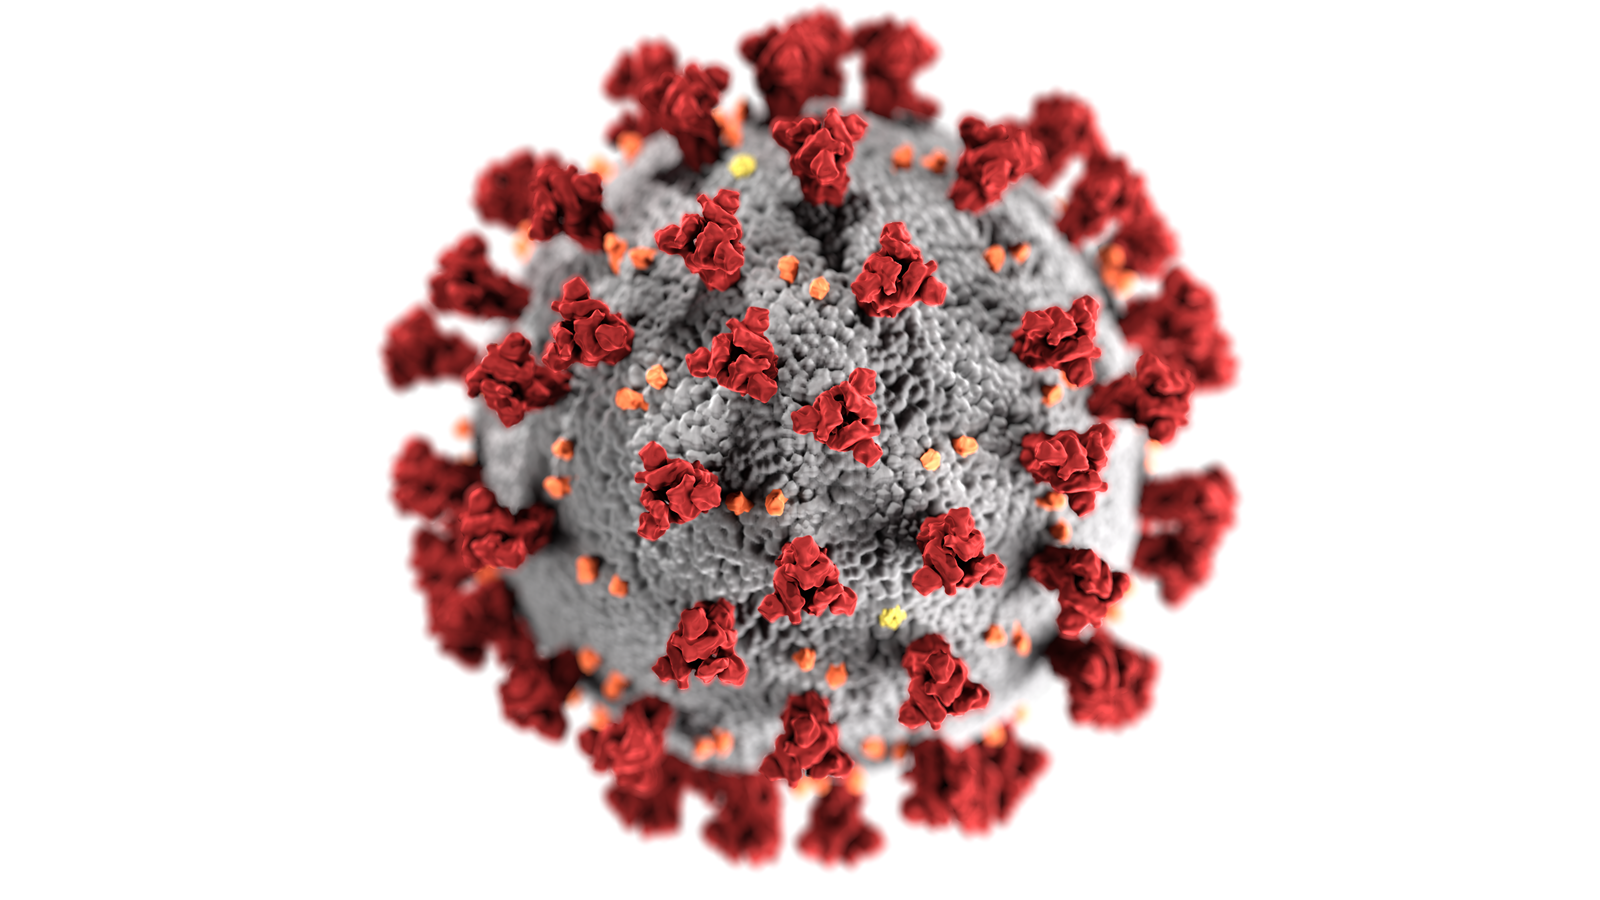 An illustration of the coronavirus, with red spikes.